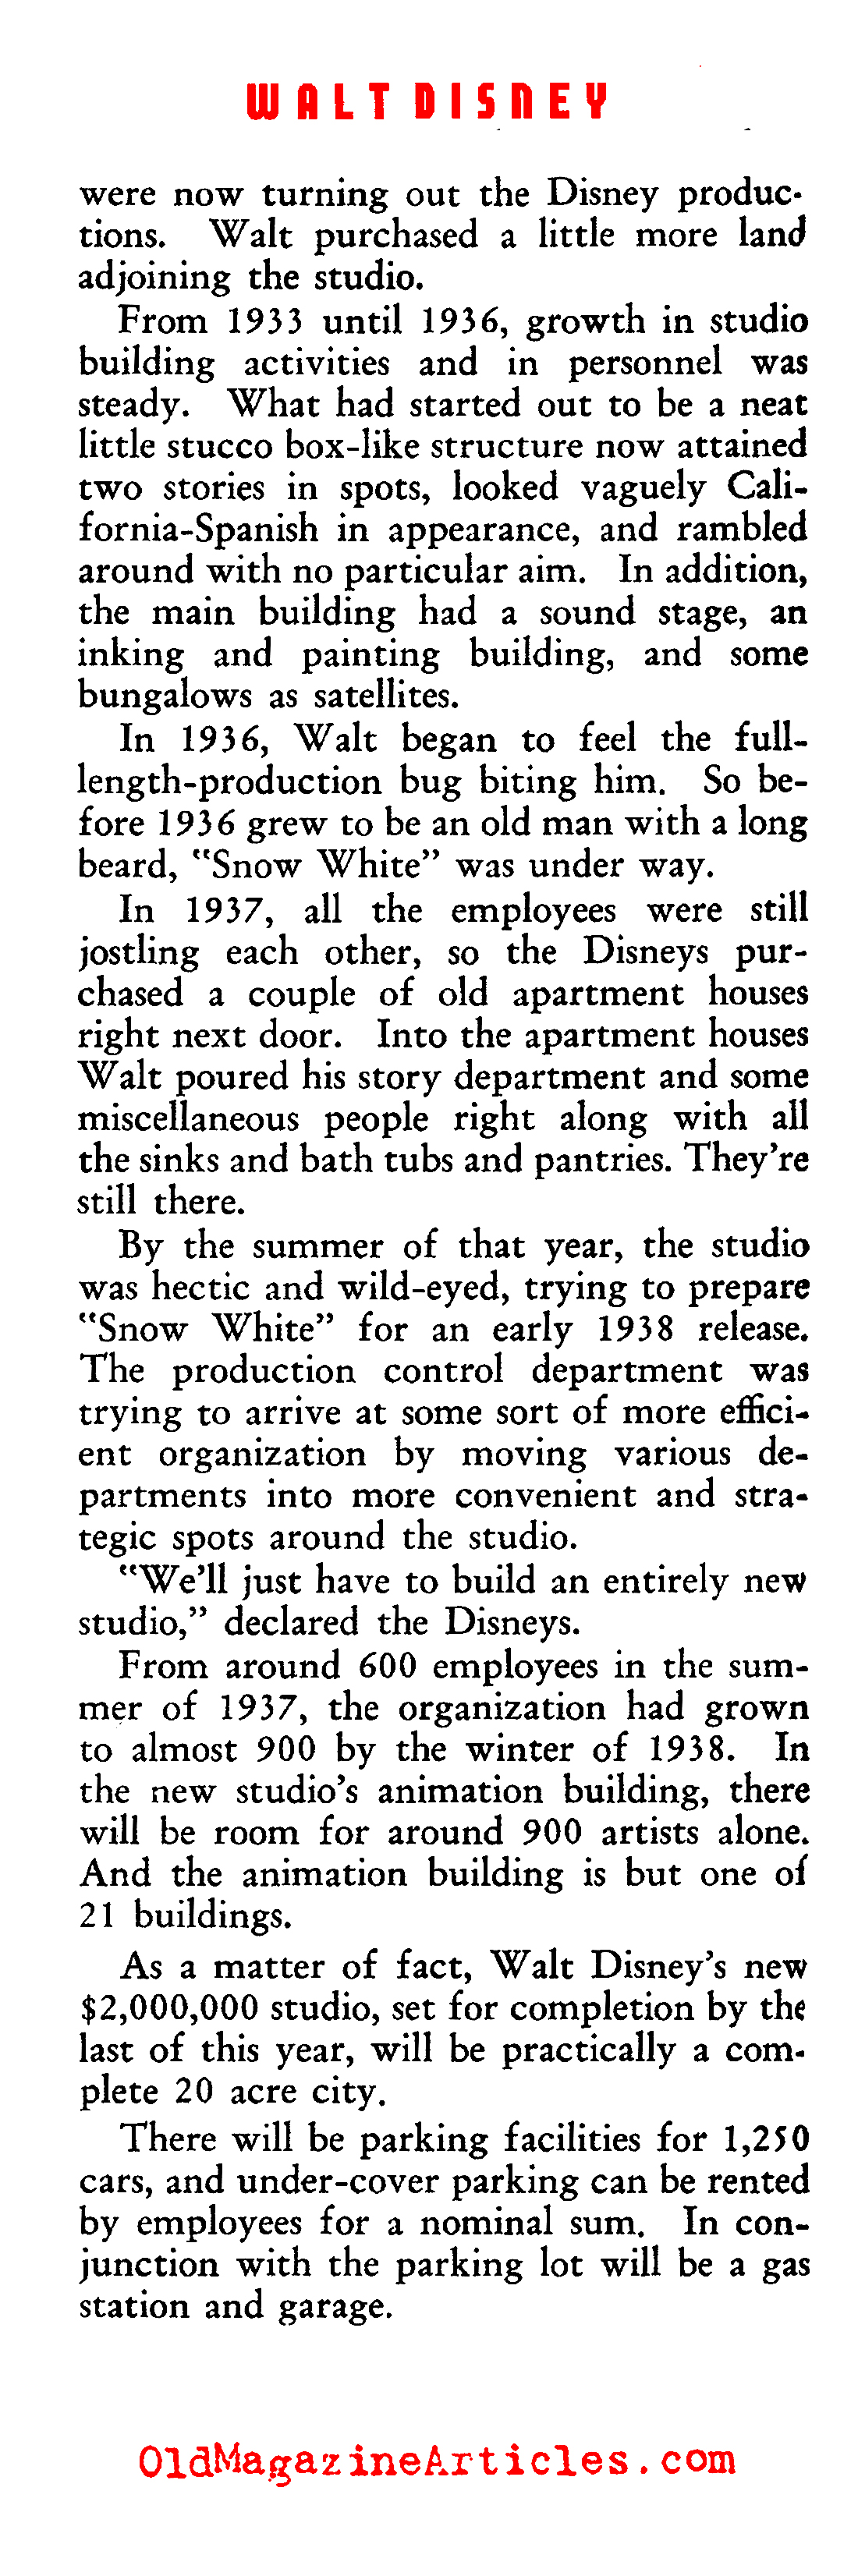 Growth and Expansion at the Walt Disney Company (Film Daily, 1939)